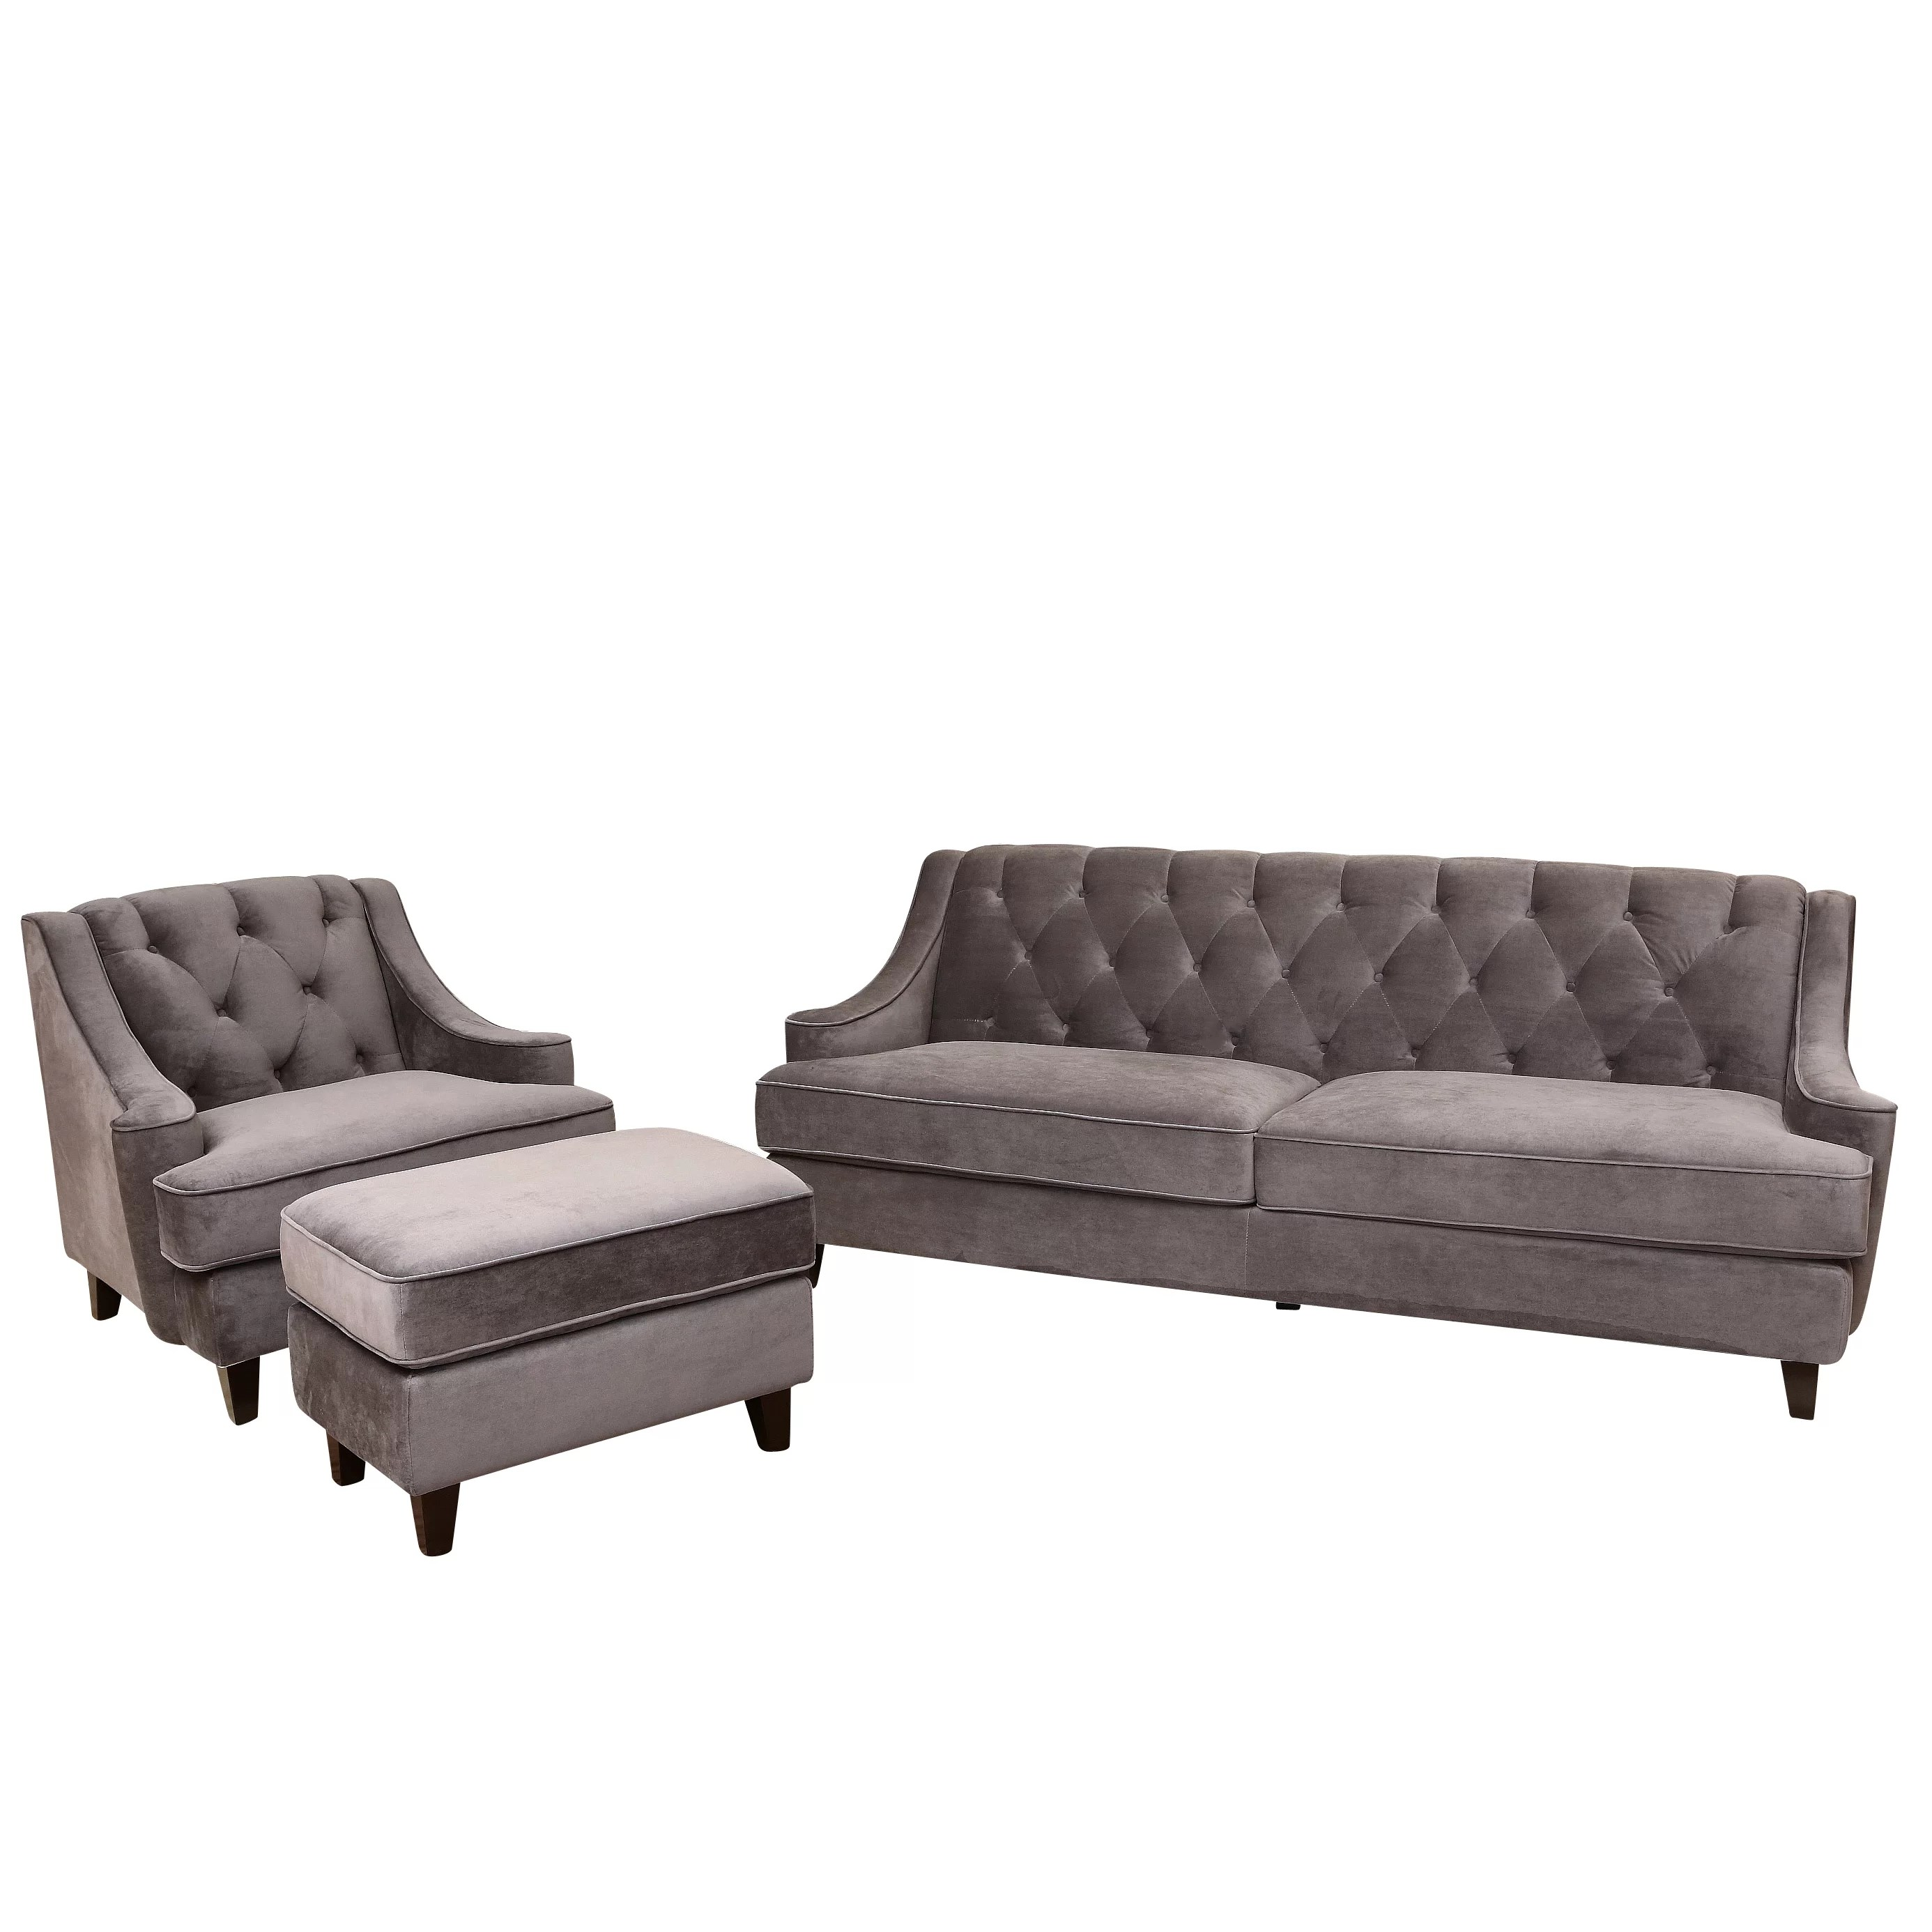 chloe velvet tufted sofa living room furniture collection elegant and comfortable set house of hampton scarborough 3 piece